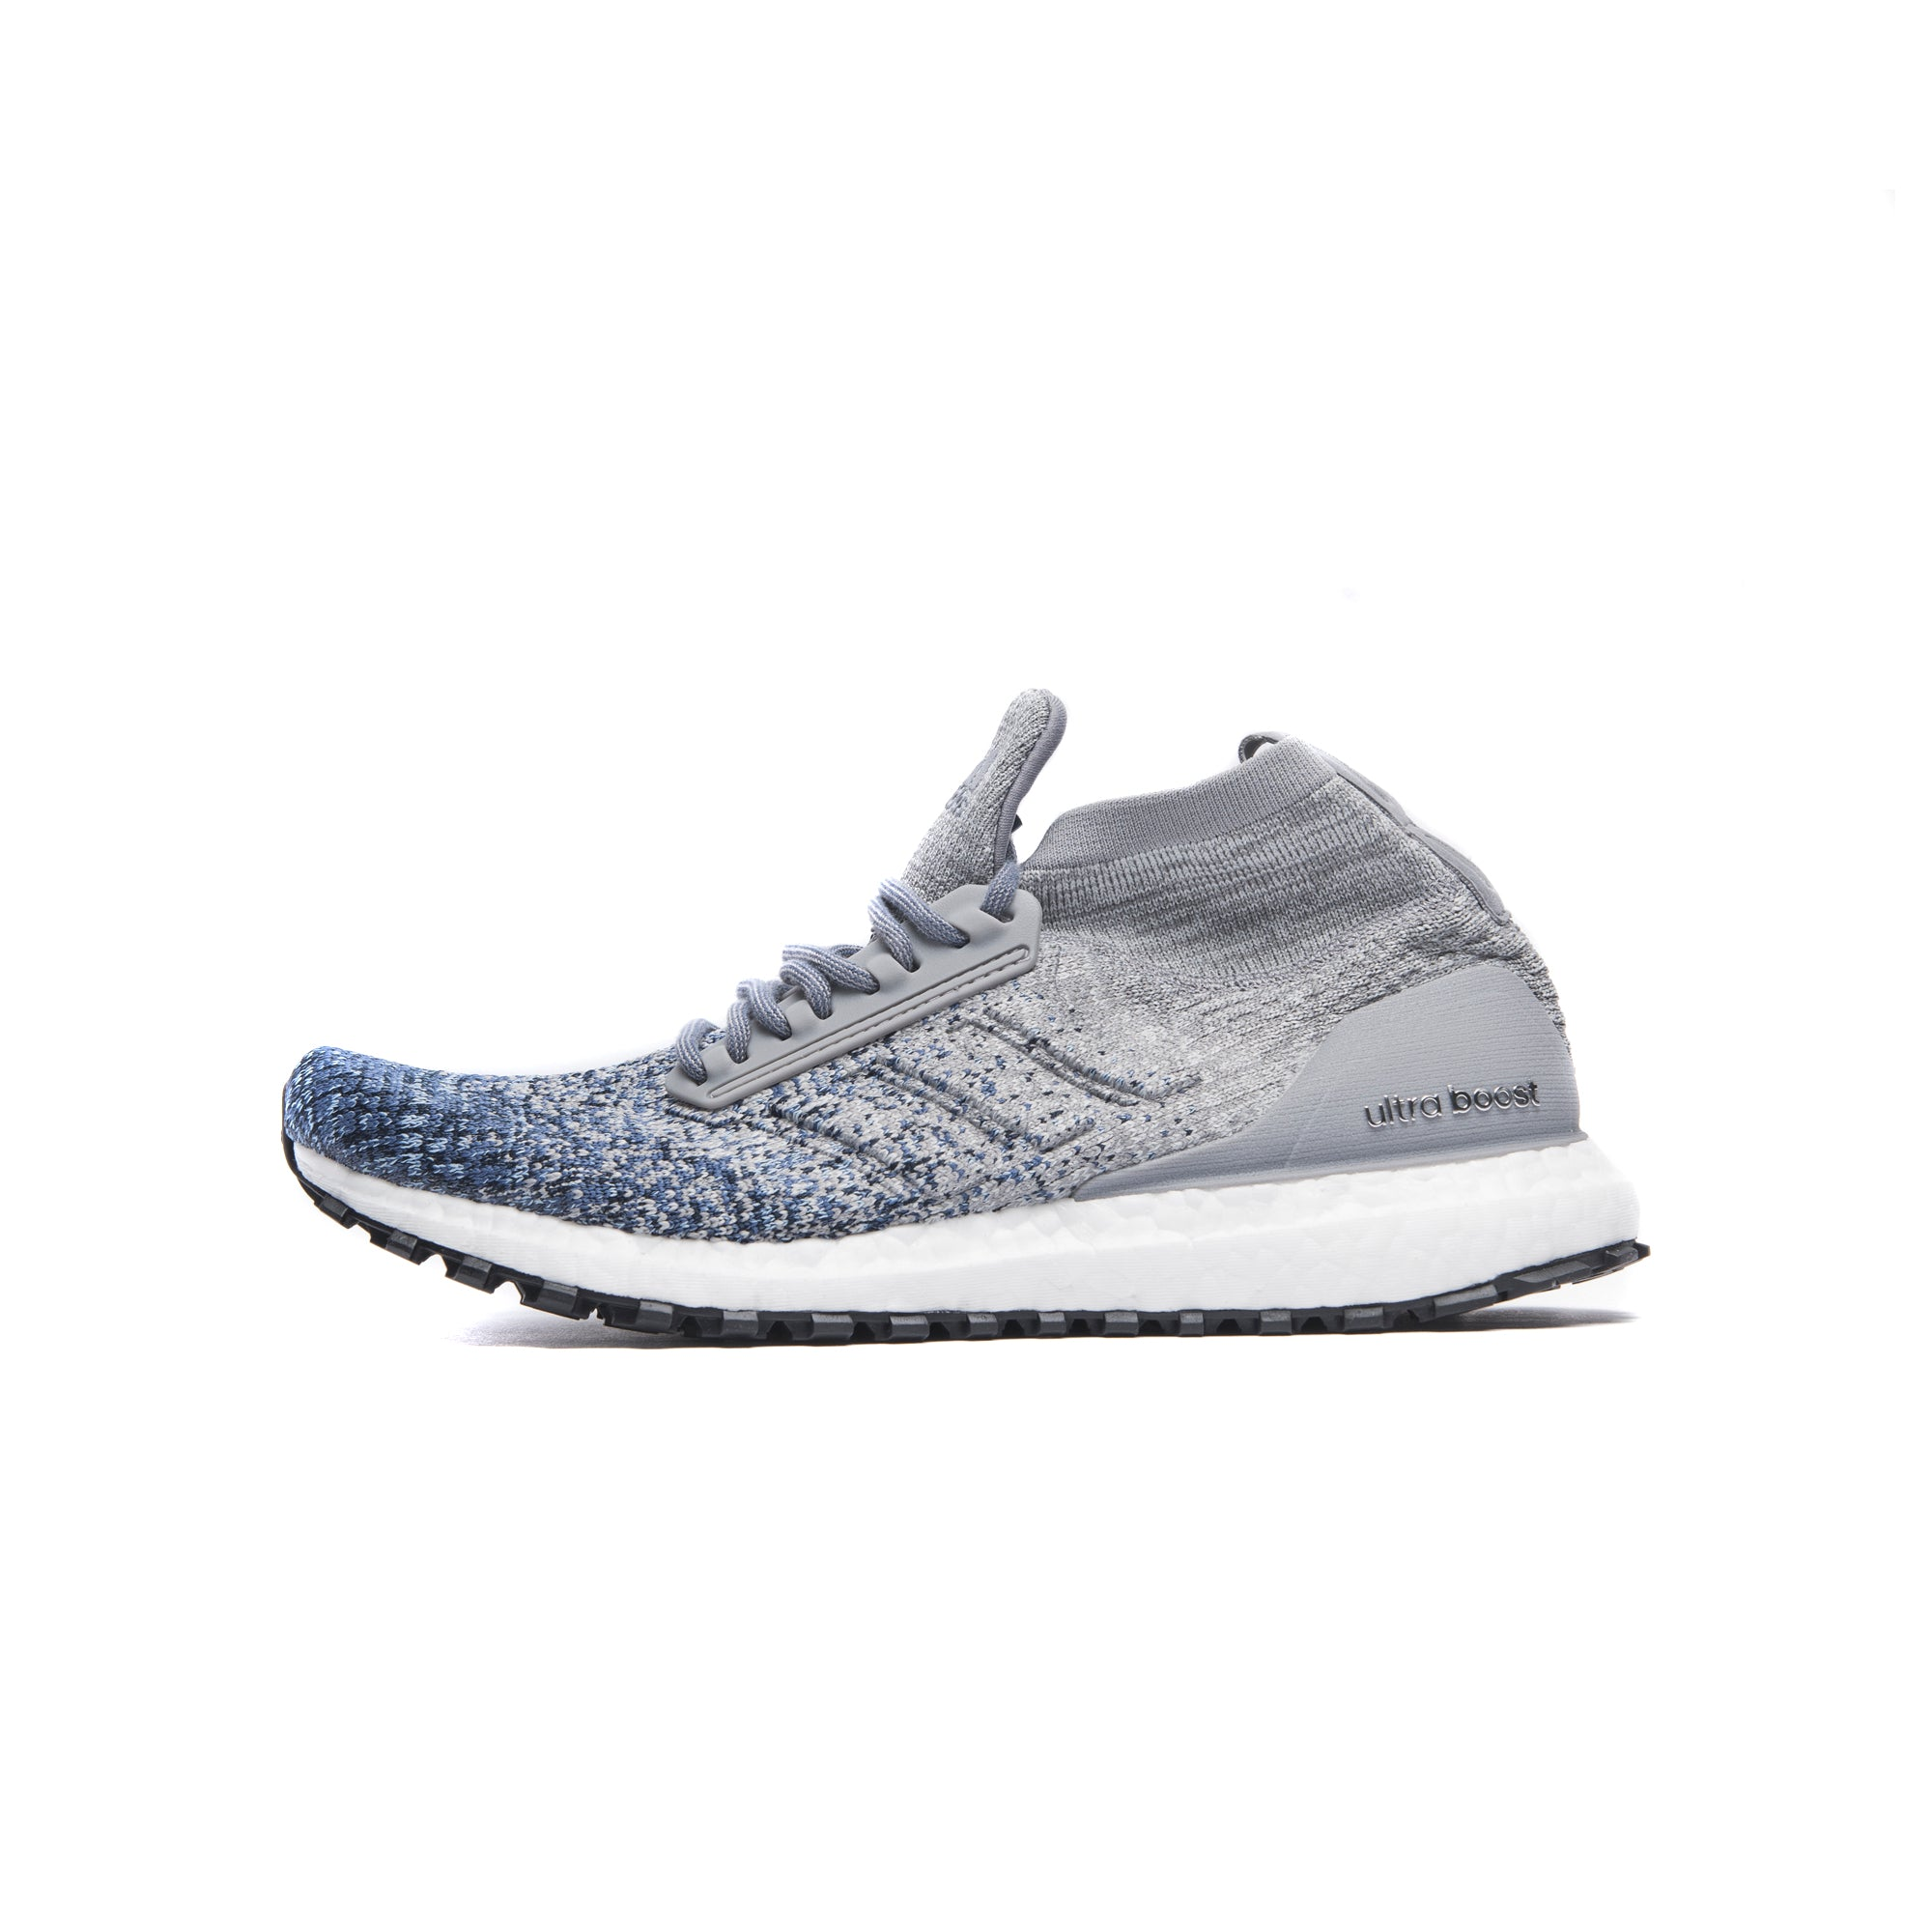 71bddd564ee81a Adidas Men s UltraBOOST All Terrain  BB6128